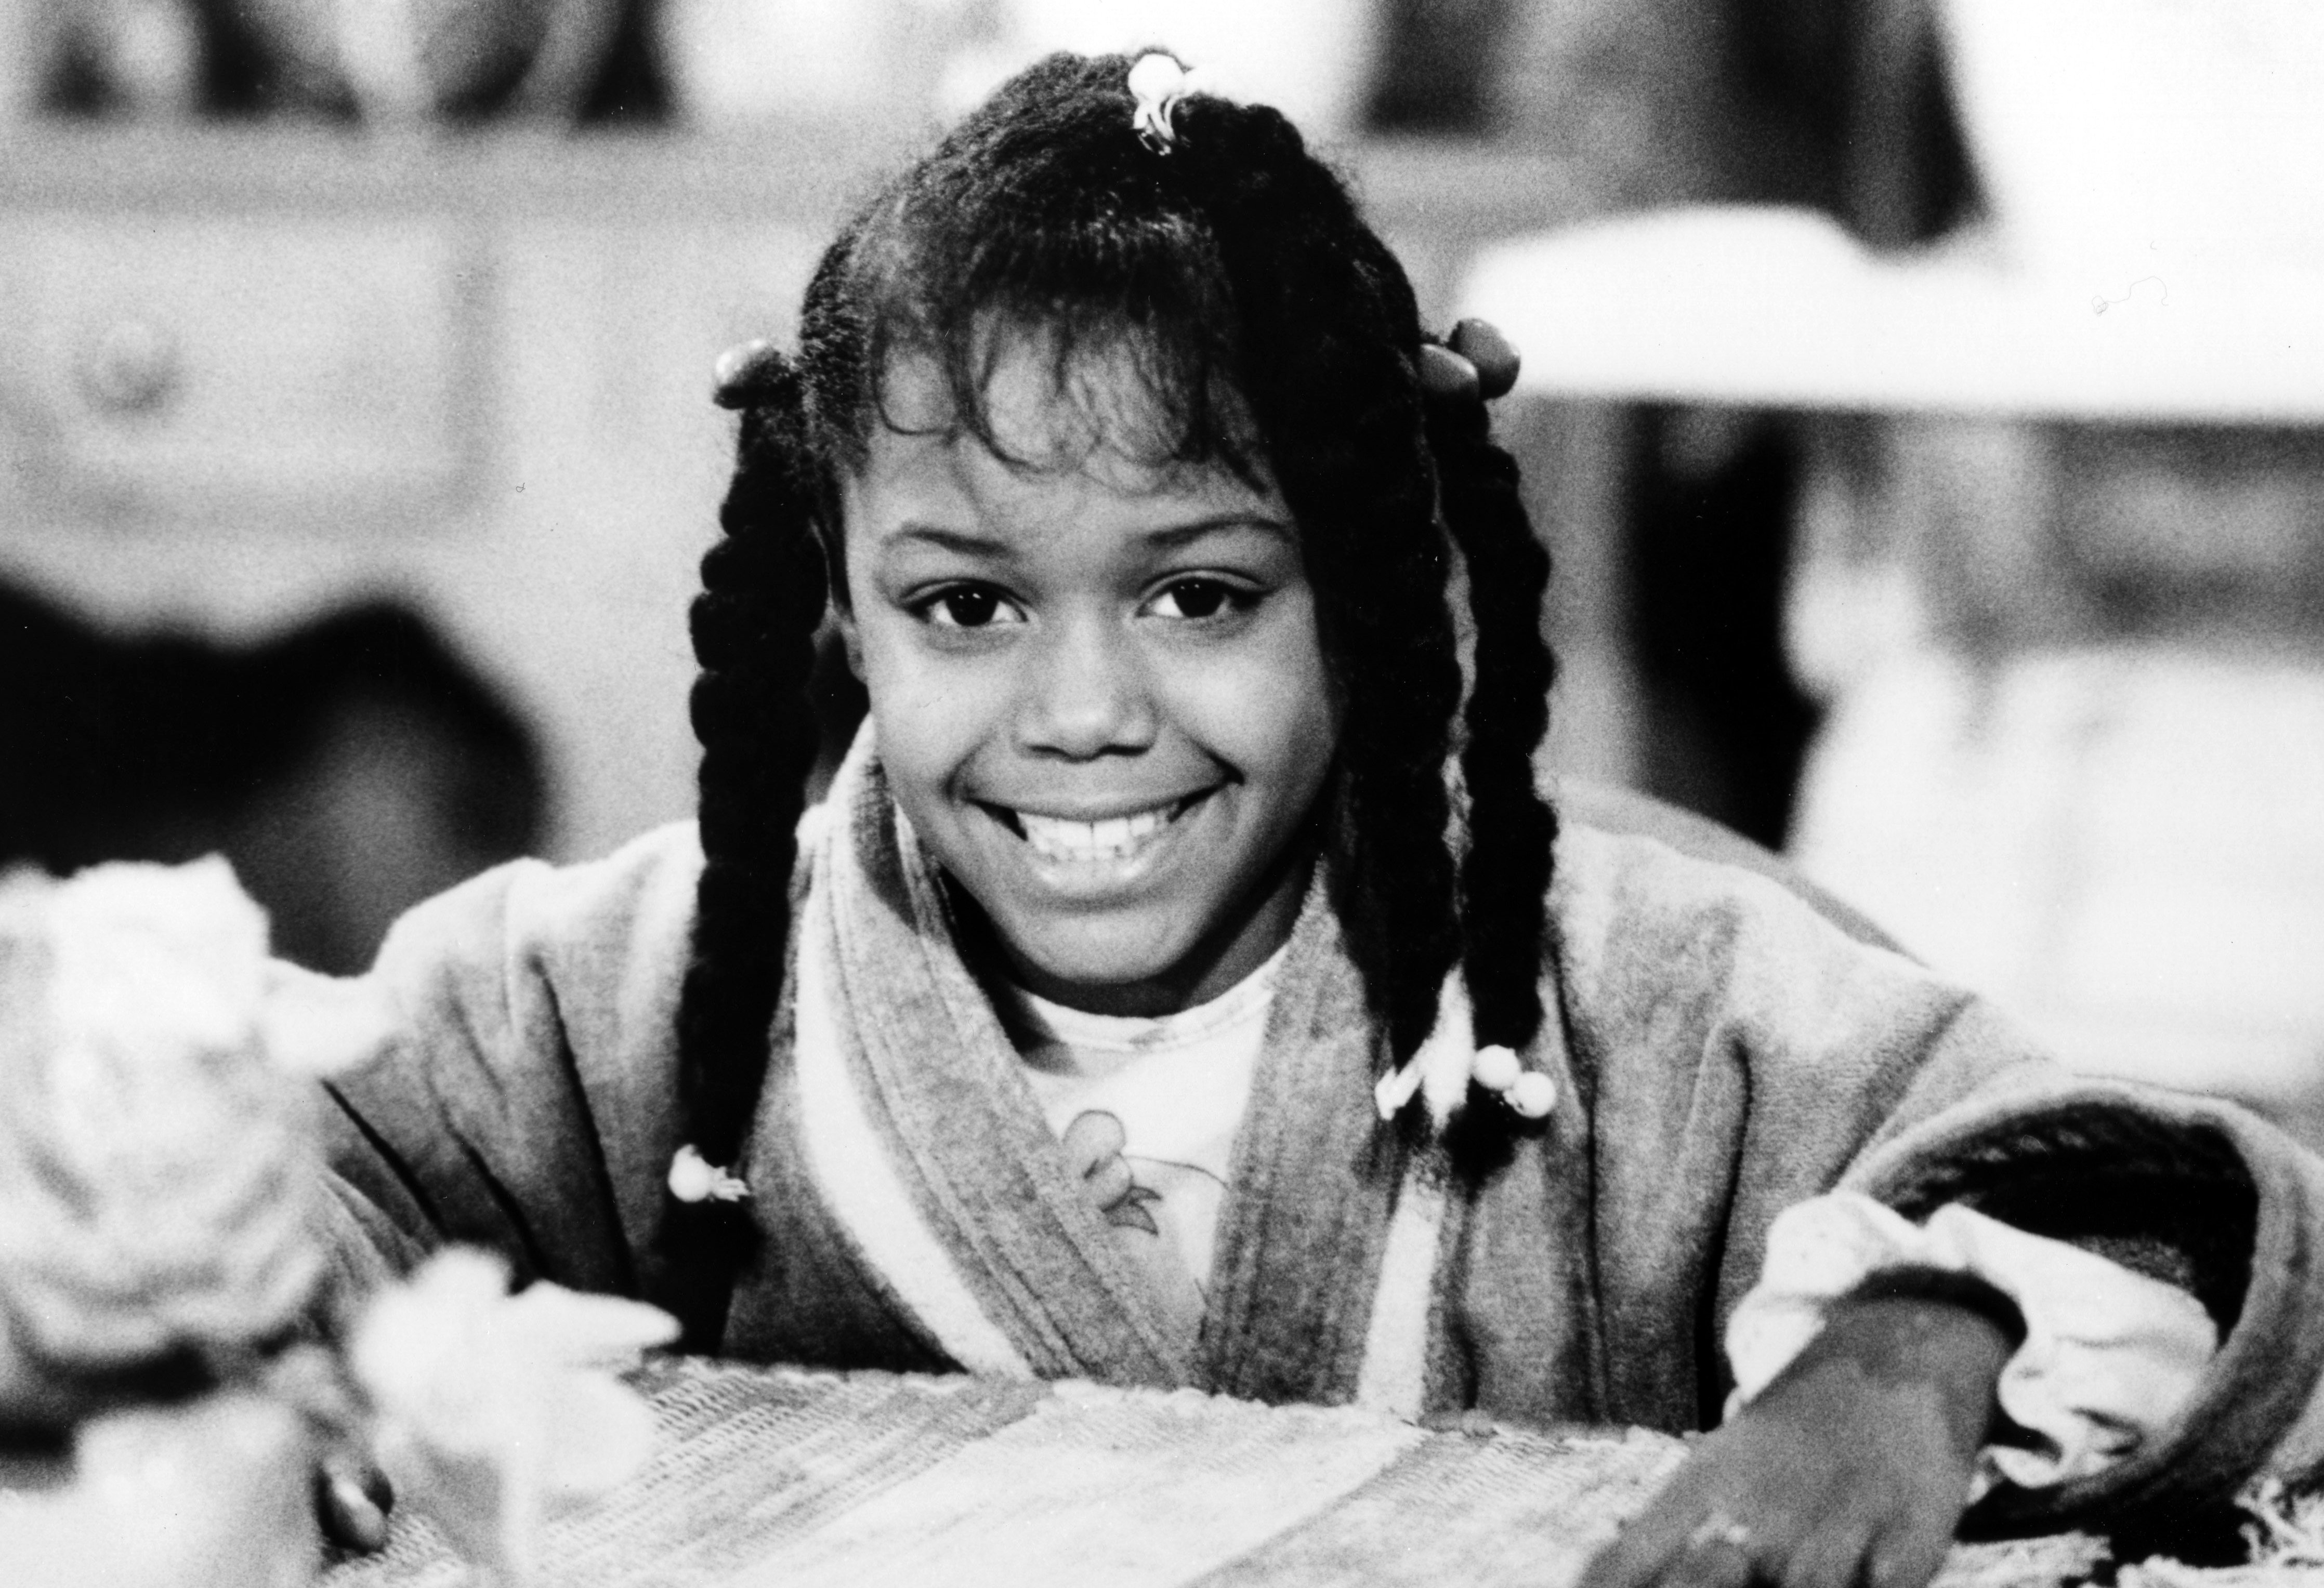 """Jaimee Foxworth pictured on an episode of """"Family Matters"""" which aired on November 17, 1989. 